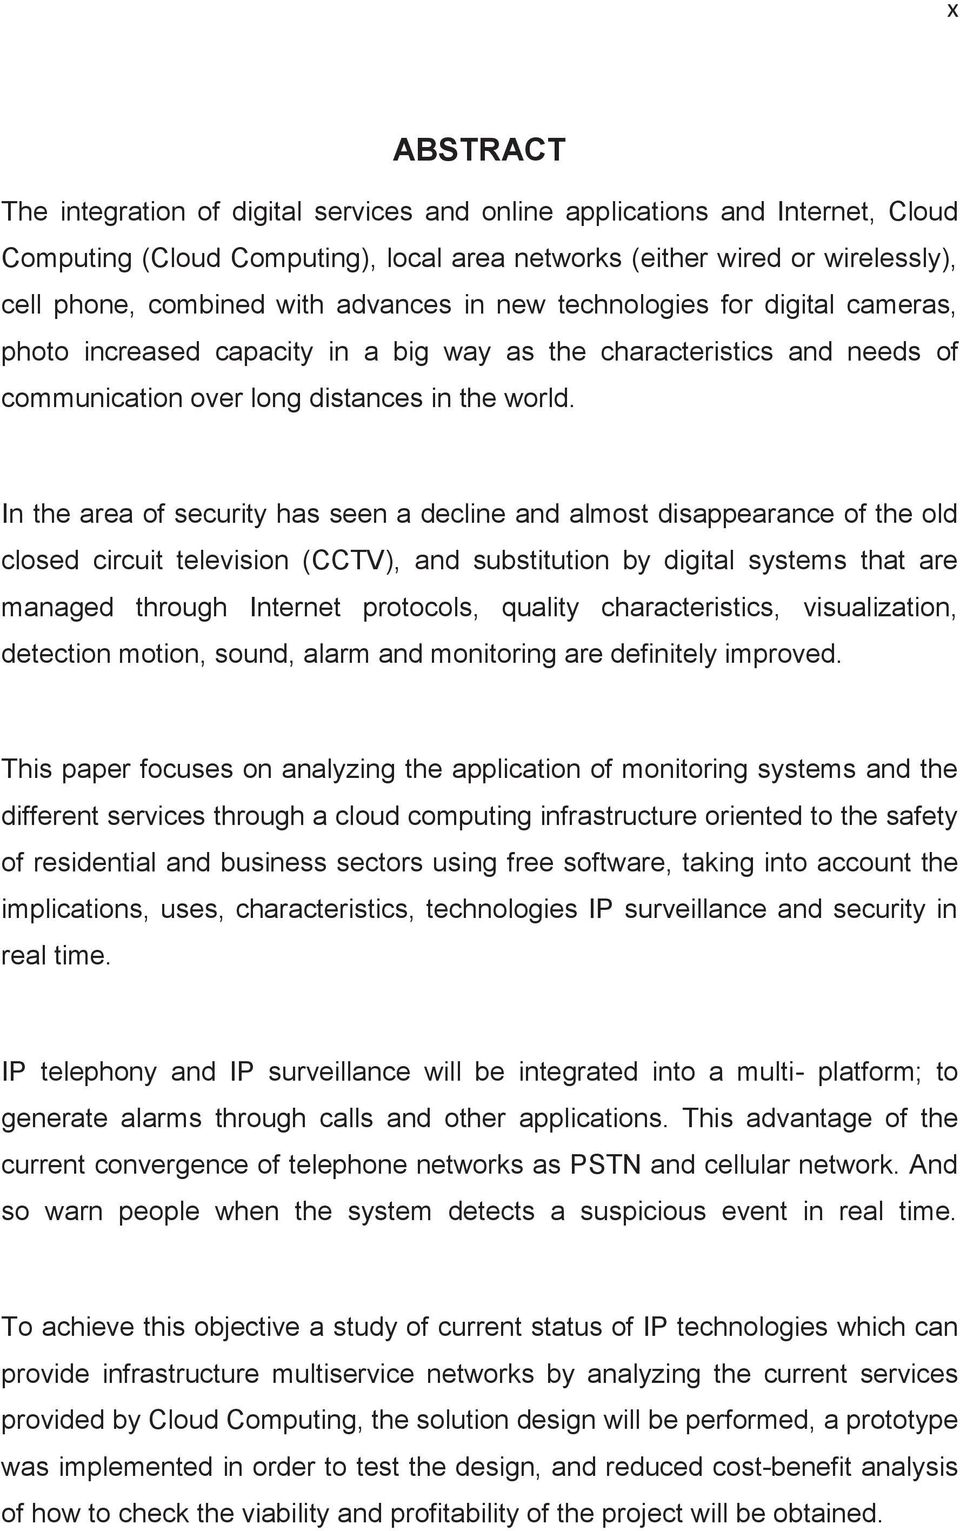 In the area of security has seen a decline and almost disappearance of the old closed circuit television (CCTV), and substitution by digital systems that are managed through Internet protocols,